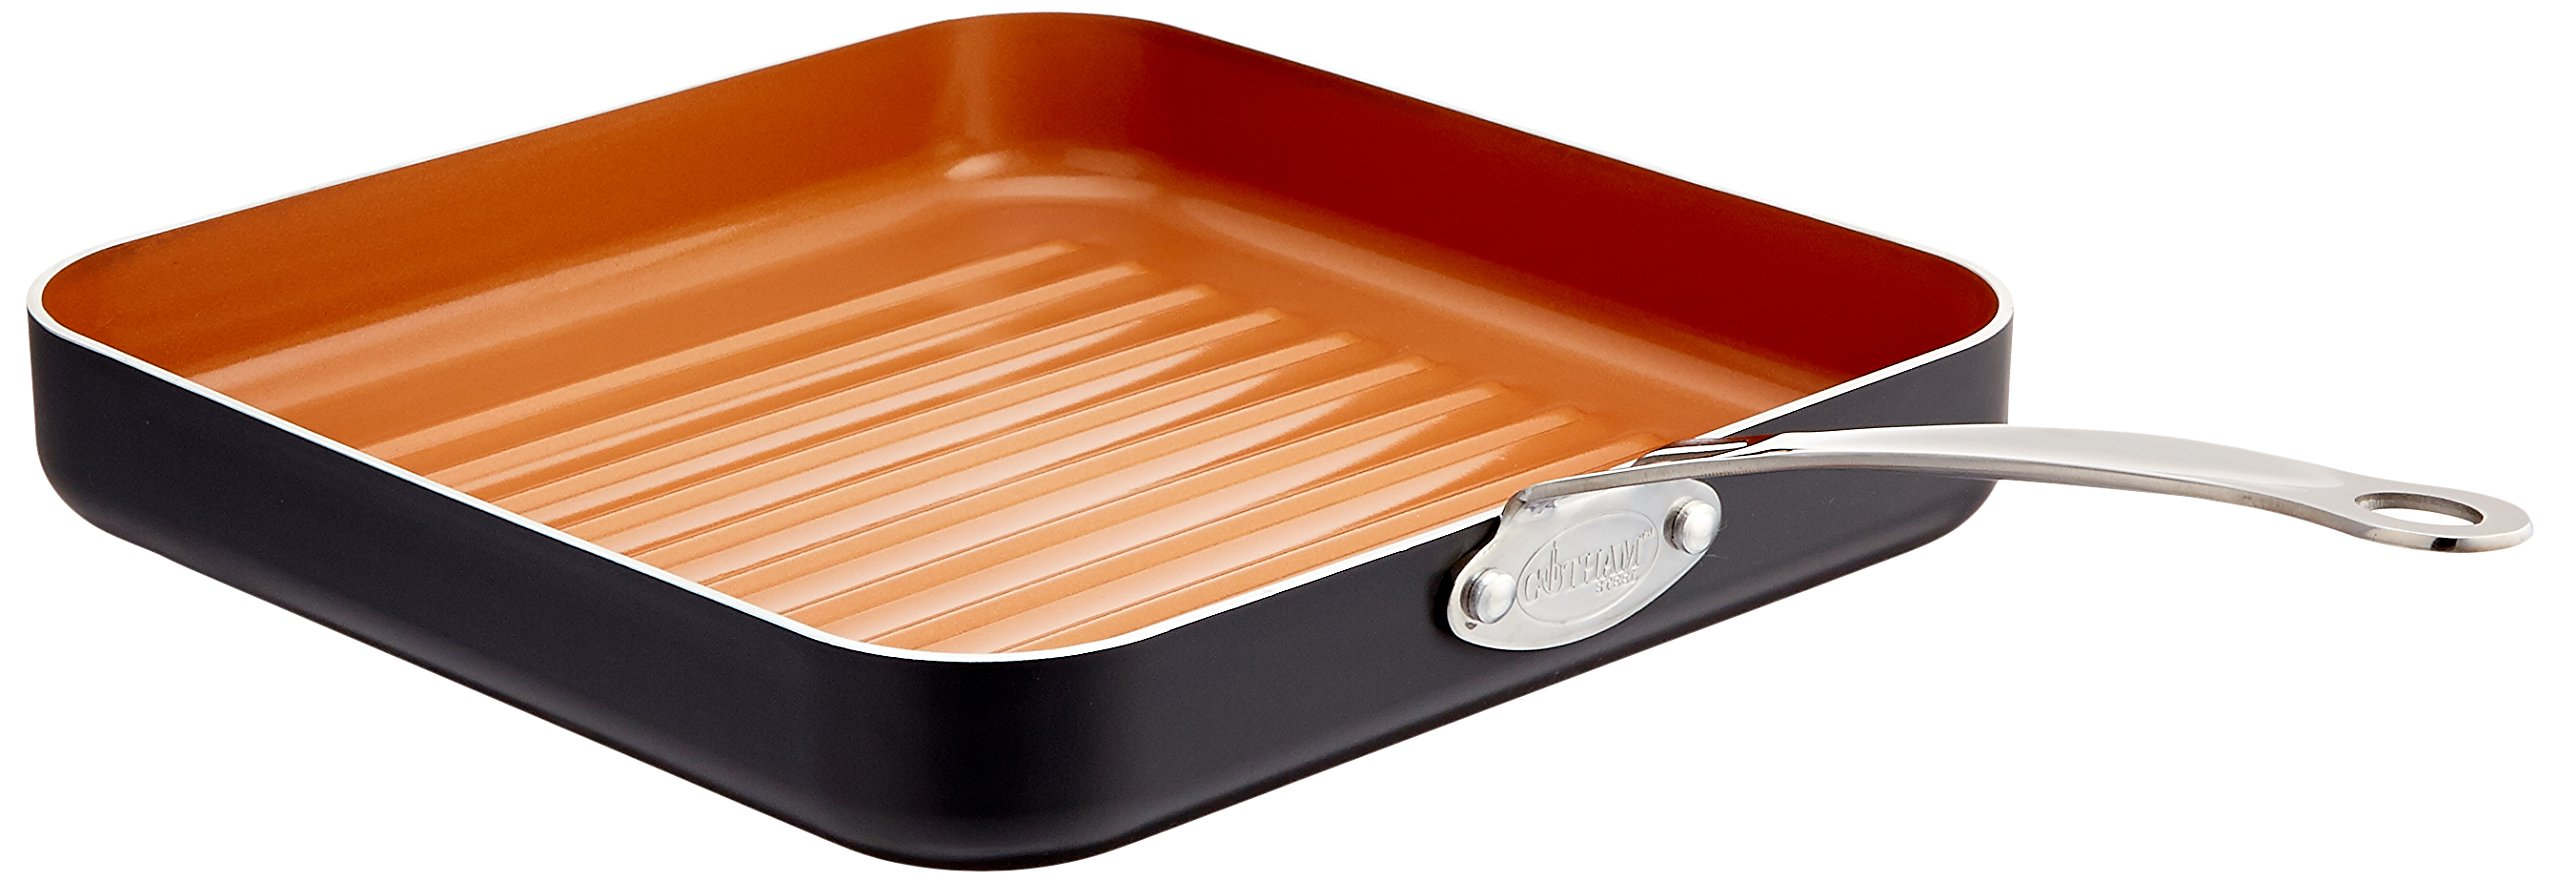 """Gotham Steel 10.5"""" Non-Stick Grill Pan with Ti-Cerama Copper Surface– Grill in your oven or on your stovetop. Perfect for Steak, Paninis, Vegetables, Dishwasher Safe"""